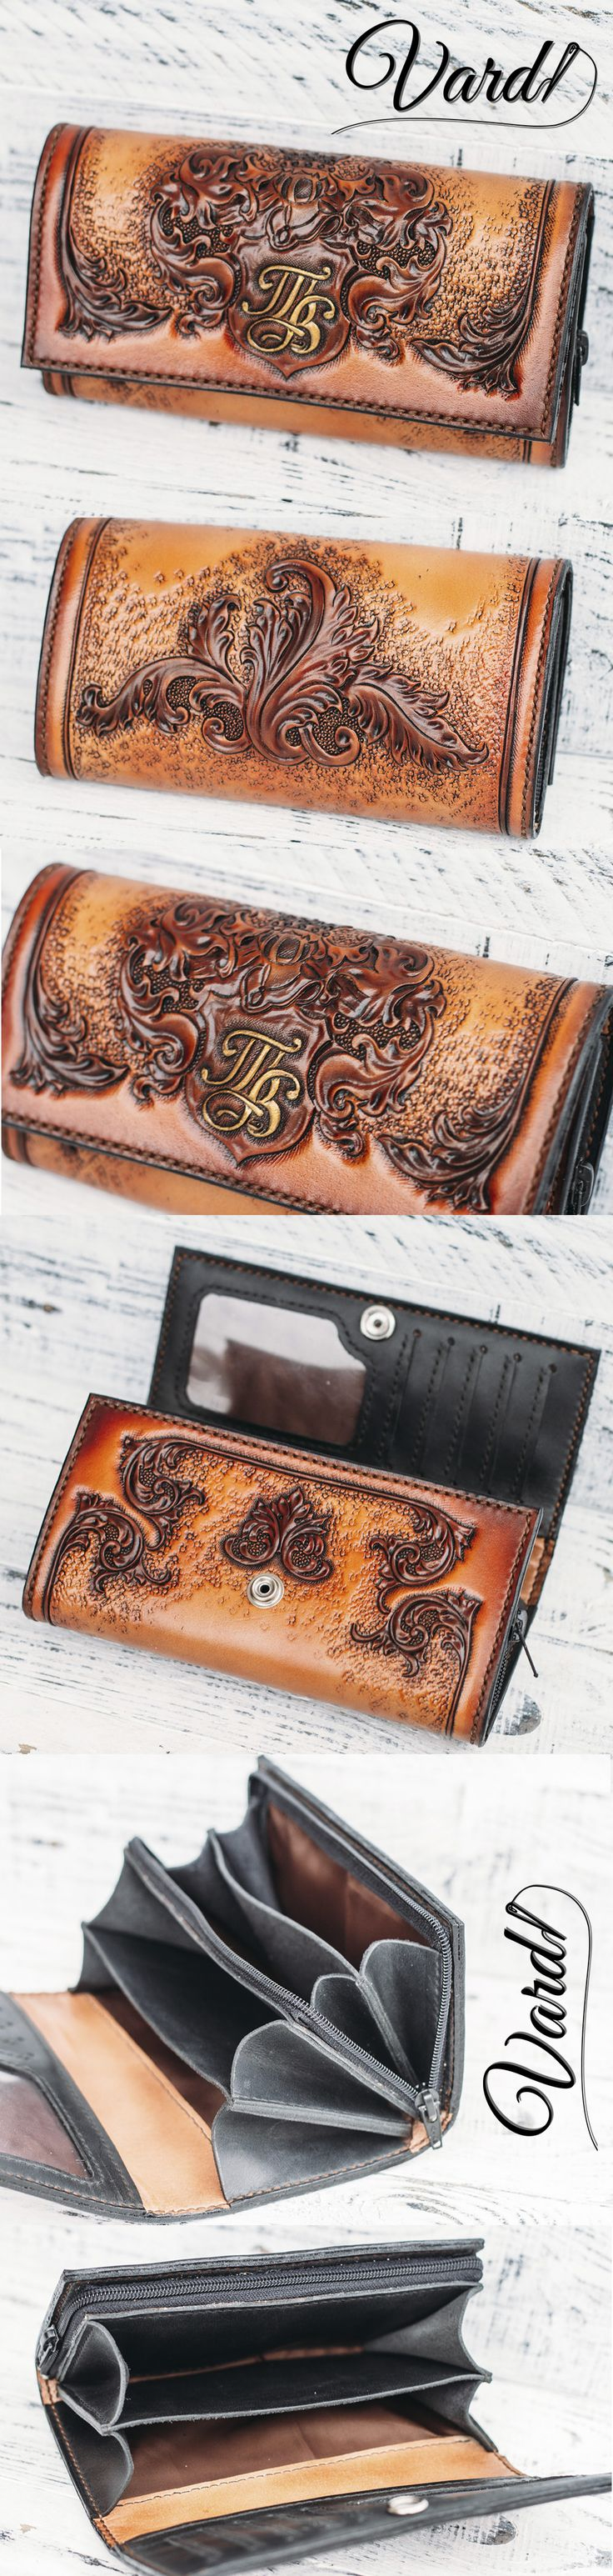 Handcrafted leather wallet, Vardi Craft Handmade long leather wallet woman, girl vintage gray long wallet, monogram, baroque, retro, coat of arms